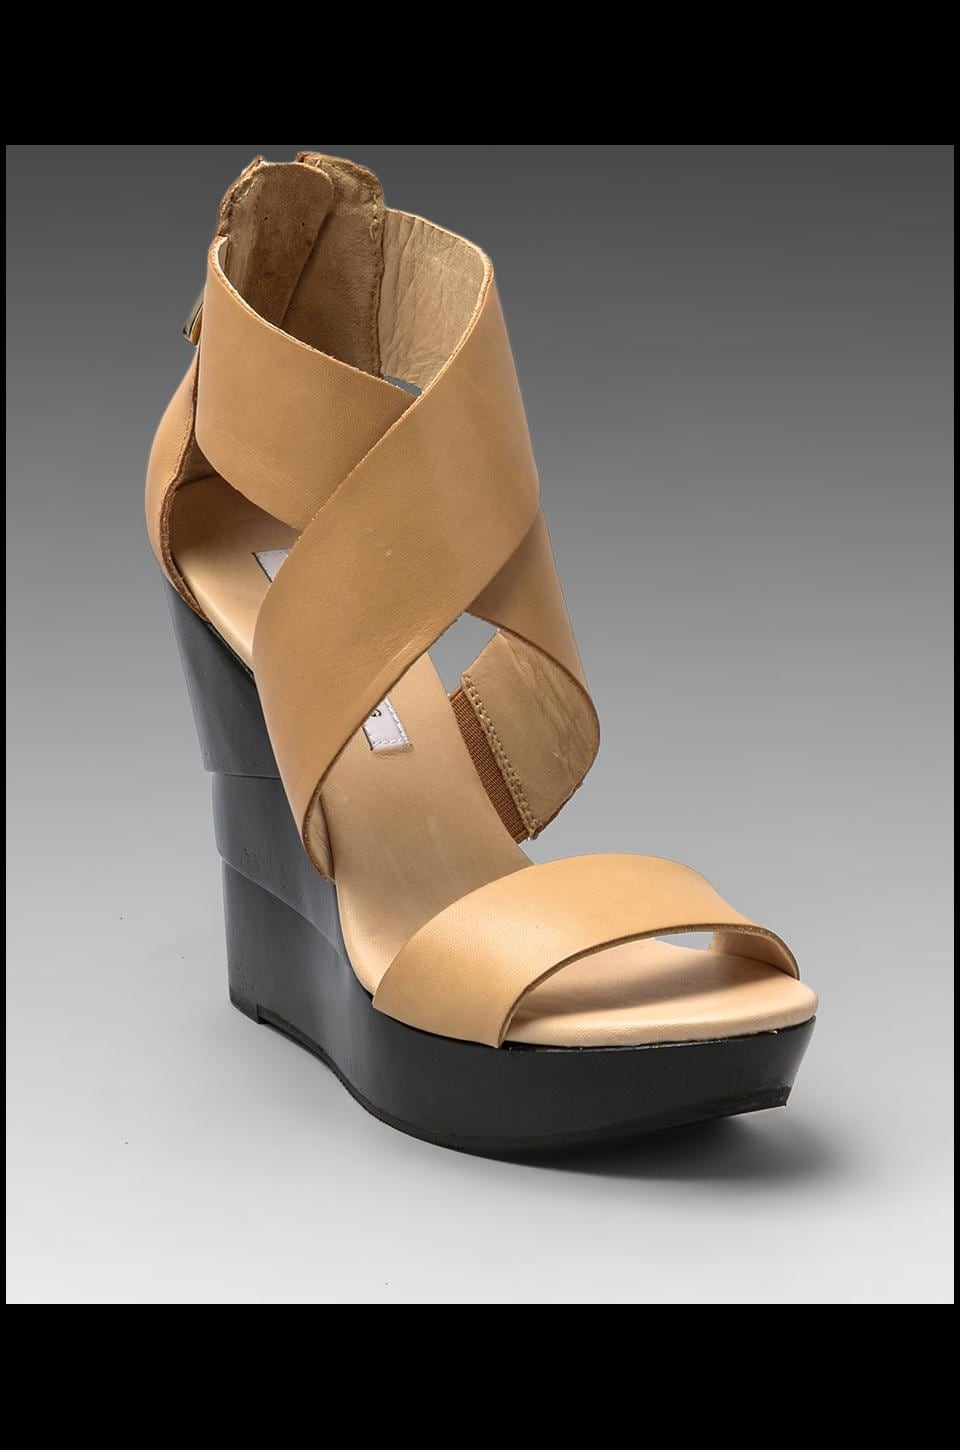 Diane von Furstenberg Opal Wedge in Natural/Black